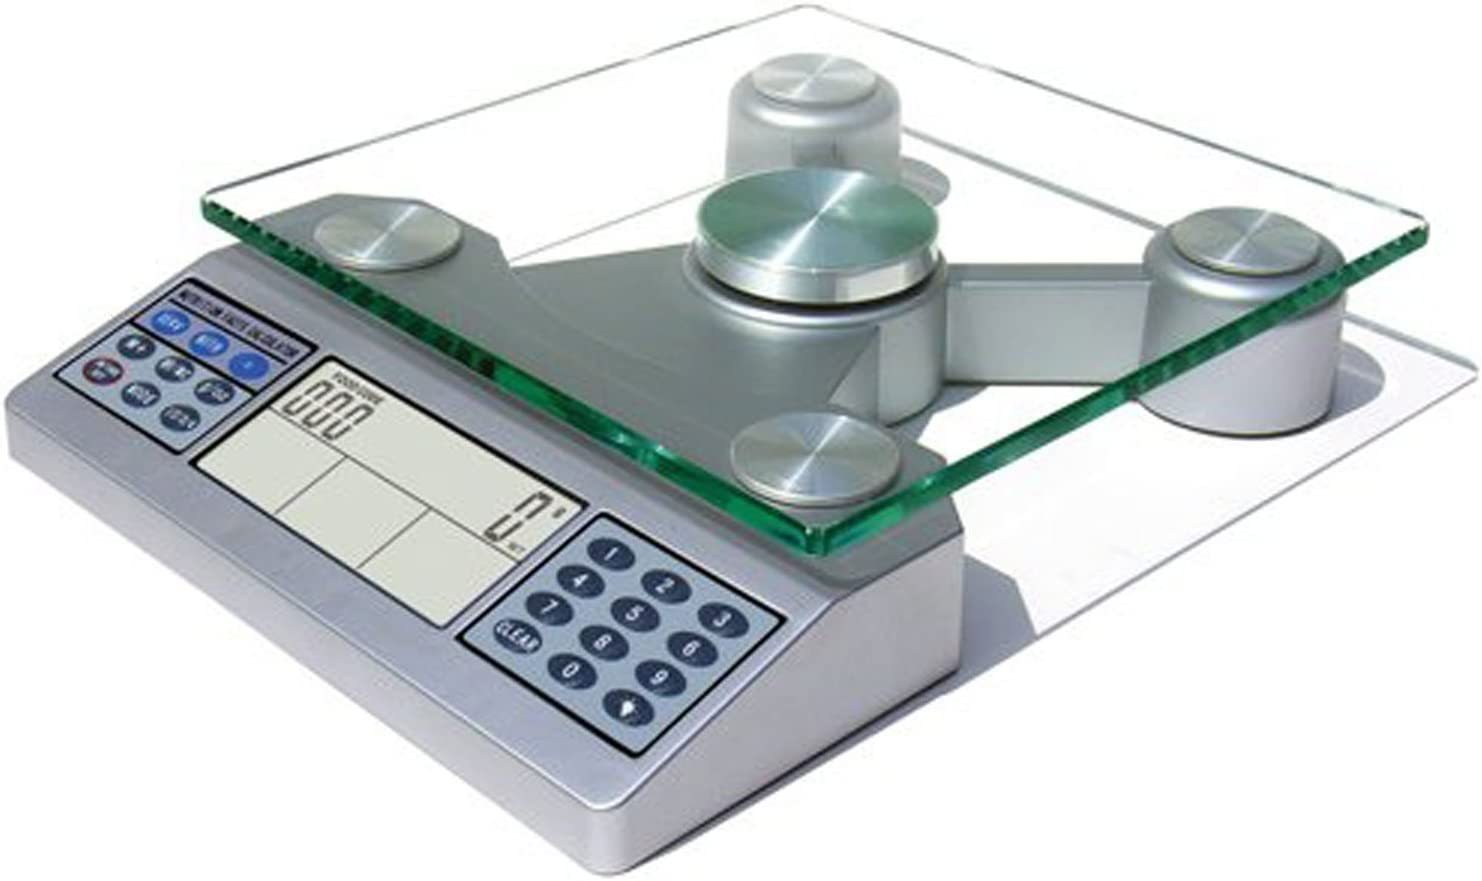 EatSmart Digital Food Scale